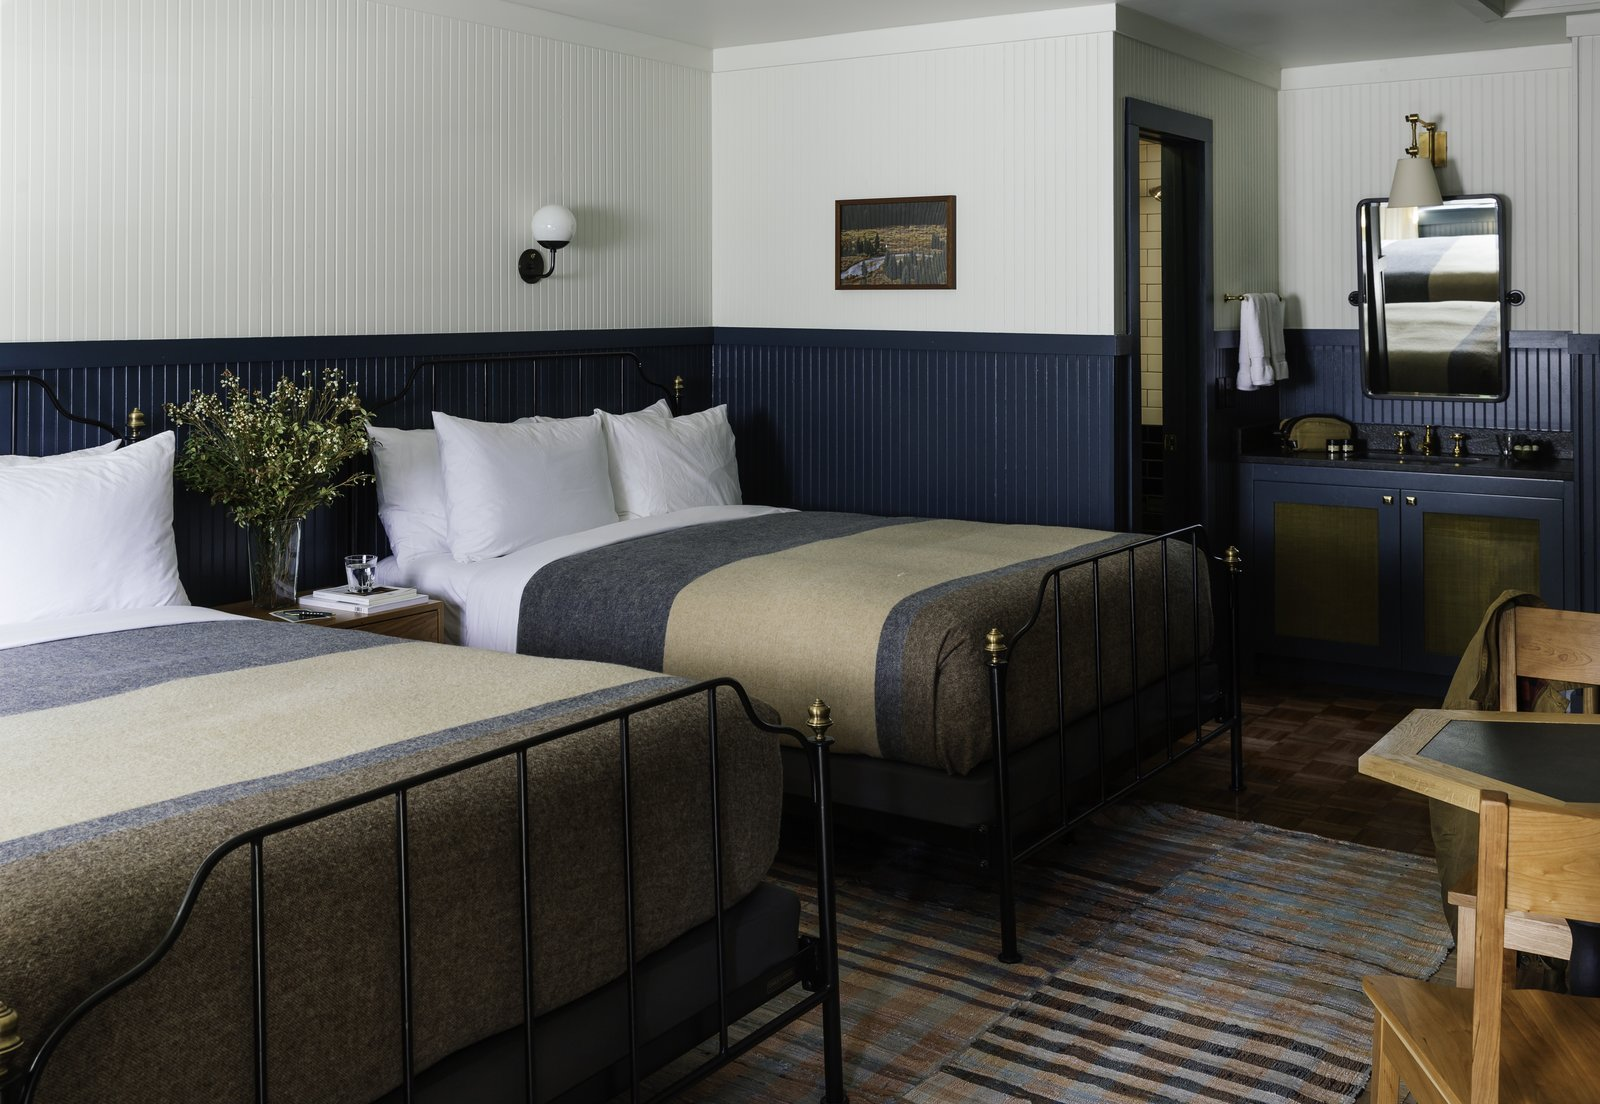 Bedroom, Rug Floor, Night Stands, Wall Lighting, Bed, Medium Hardwood Floor, and Chair  Photo 4 of 12 in Classic West Meets Contemporary Cool at the Anvil Hotel in Jackson, Wyoming